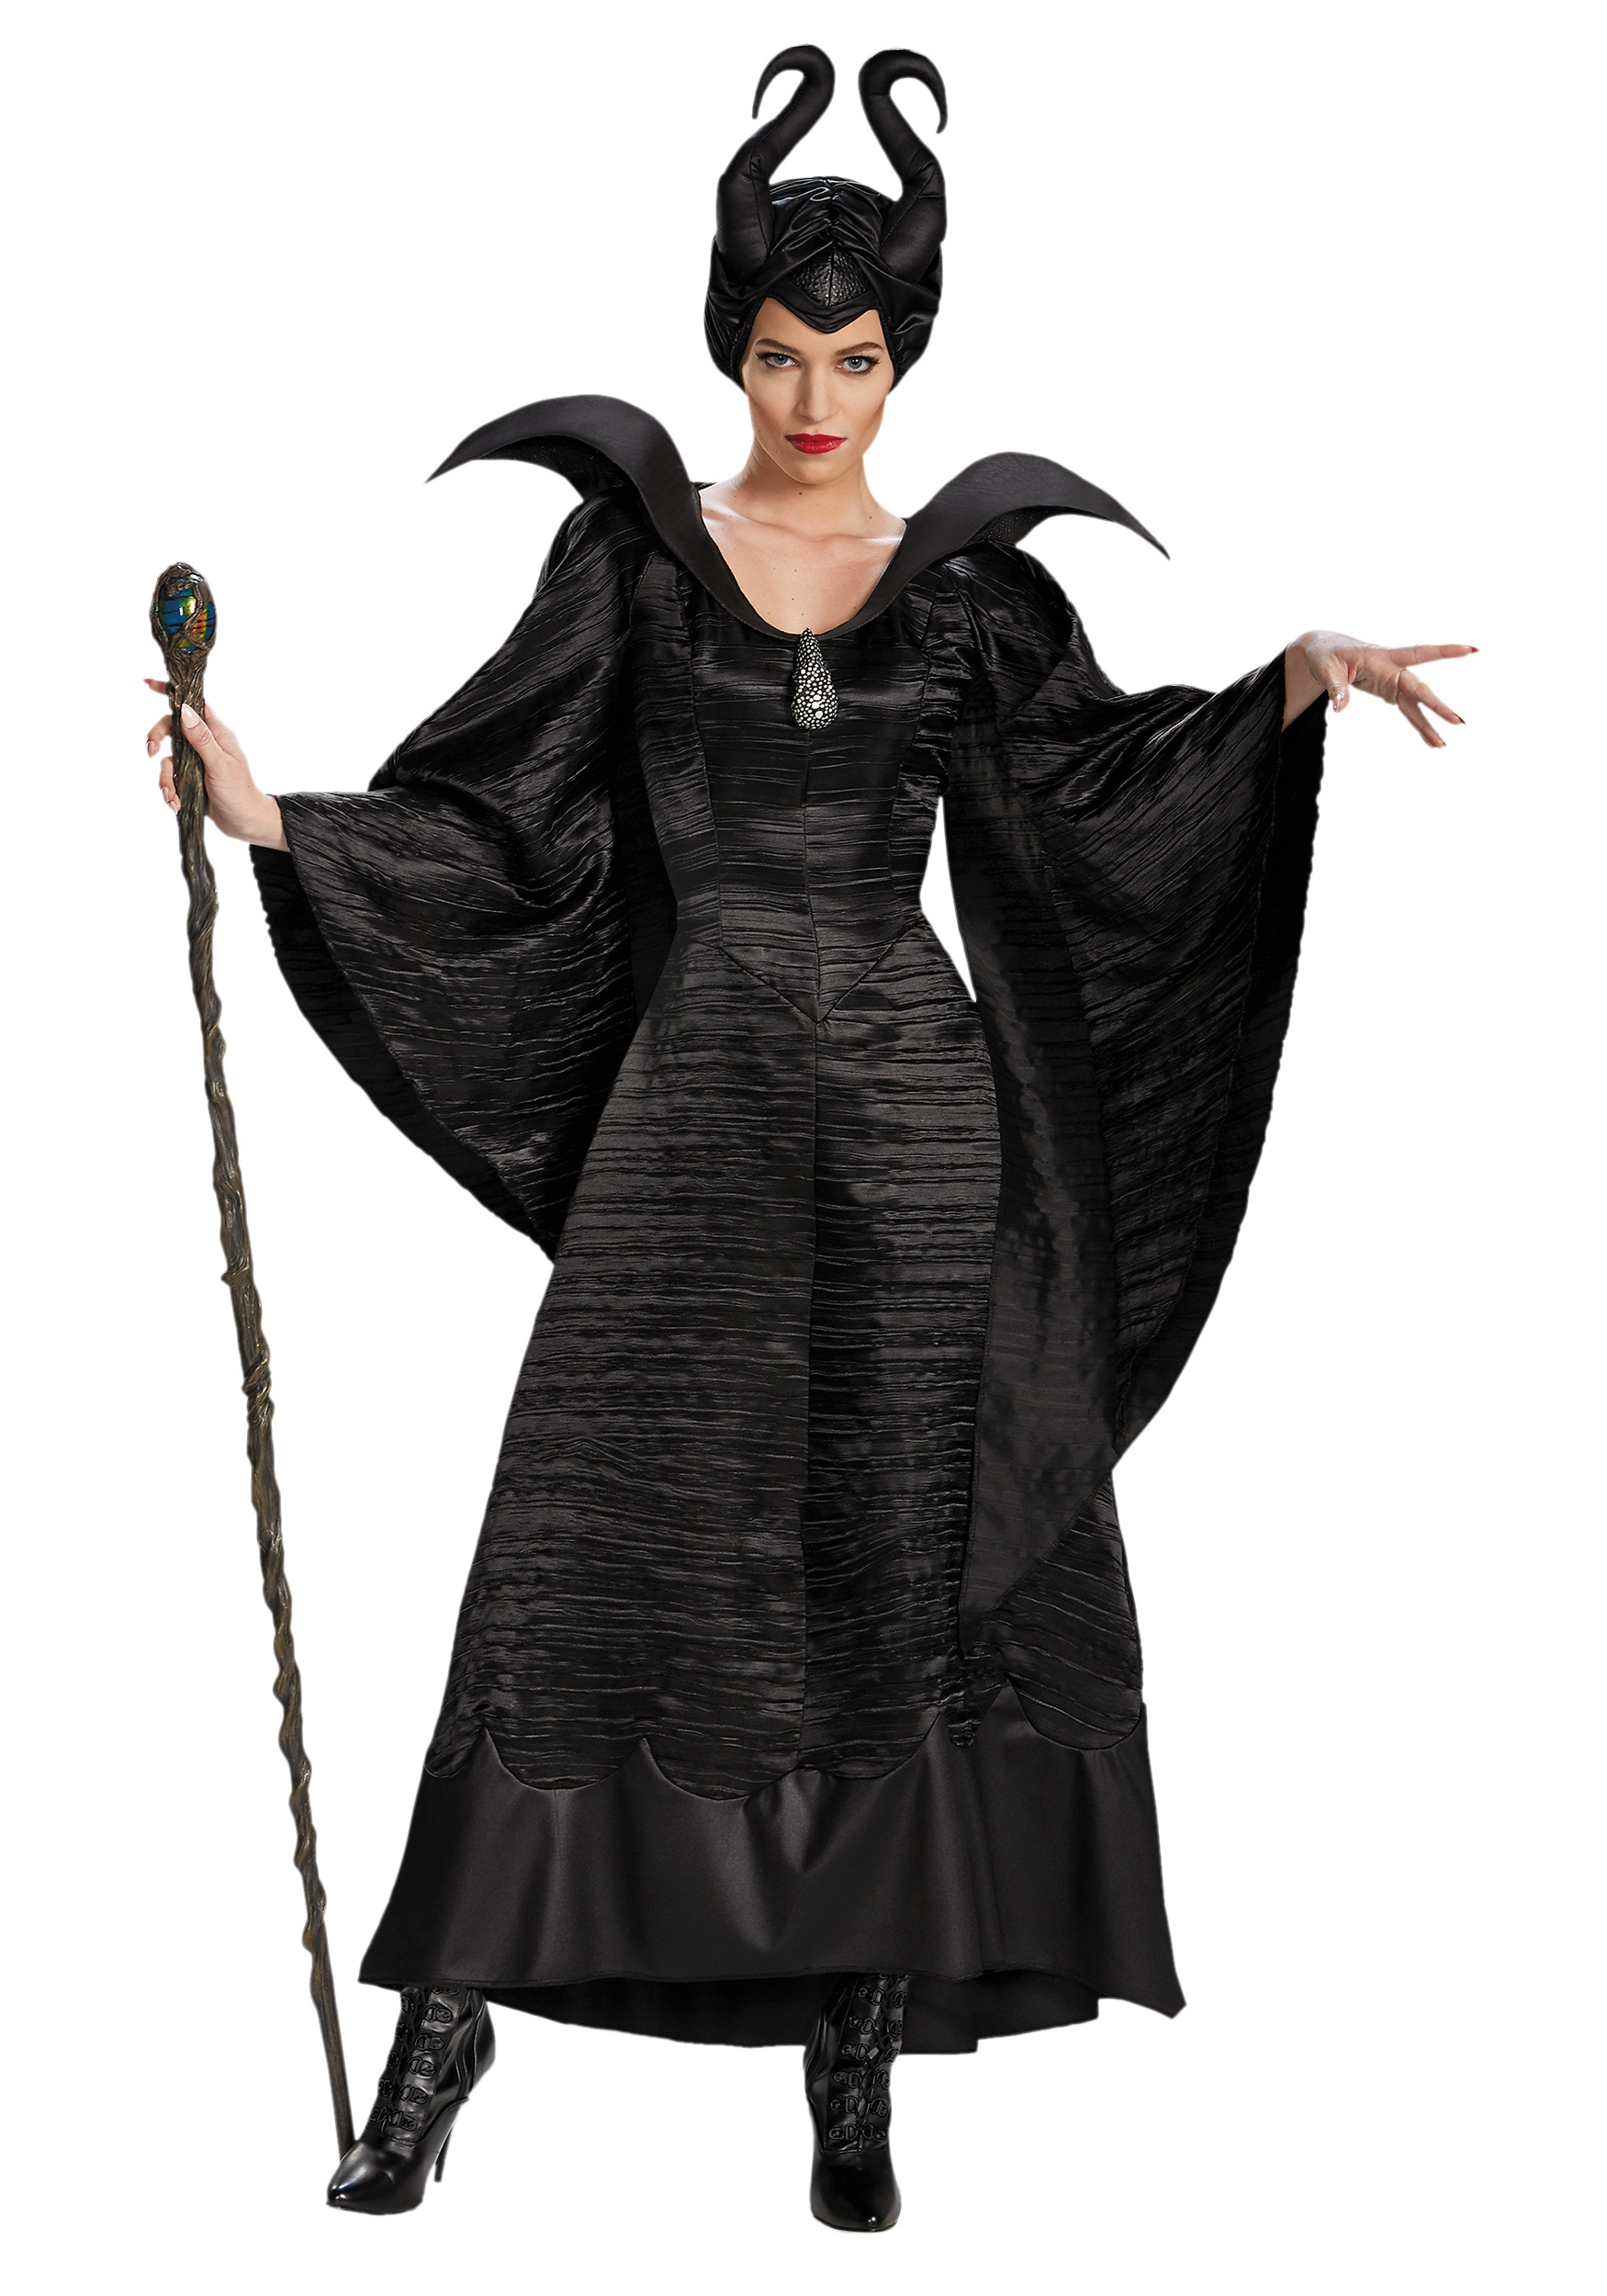 Adult Deluxe Maleficent Christening Black Gown Costume